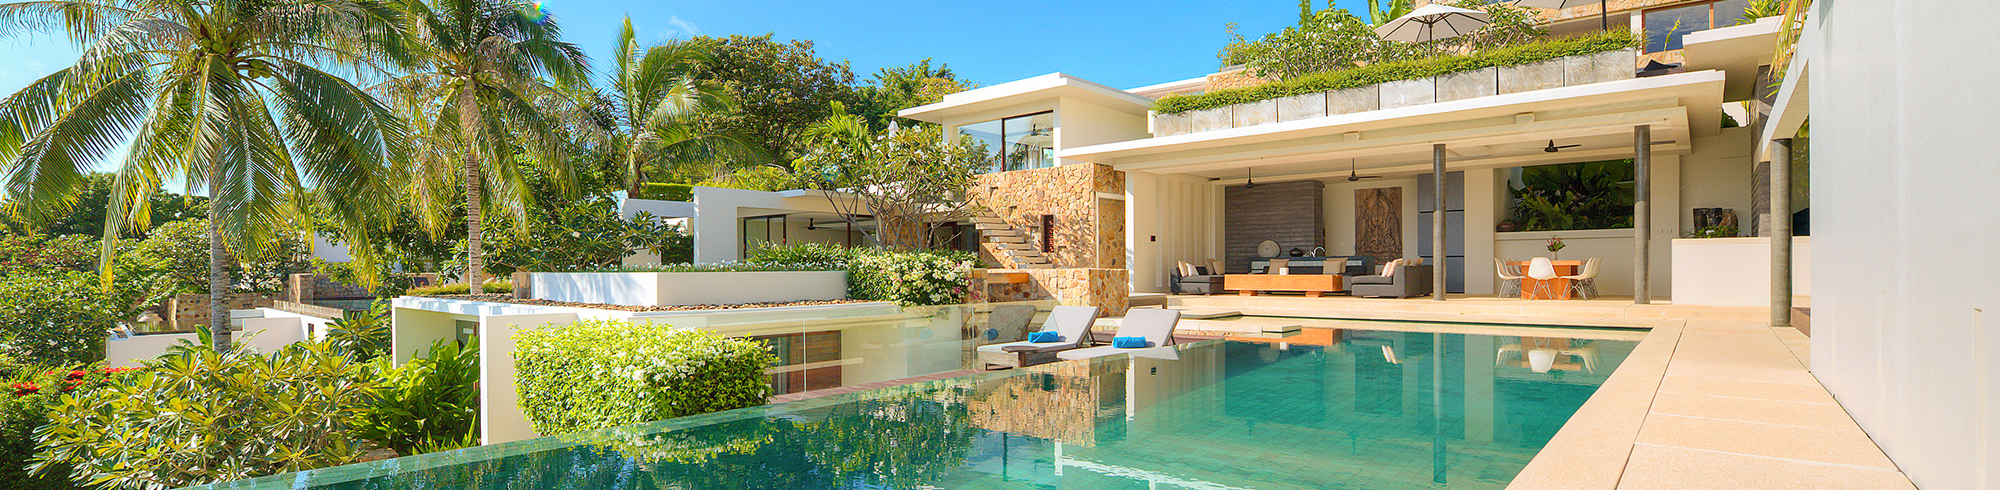 Banner​ ​ image​ ​ of​ ​ holiday​ ​ homes,​ ​ villas​ ​ and​ ​ apartments​ ​ for​ ​ rent worldwide